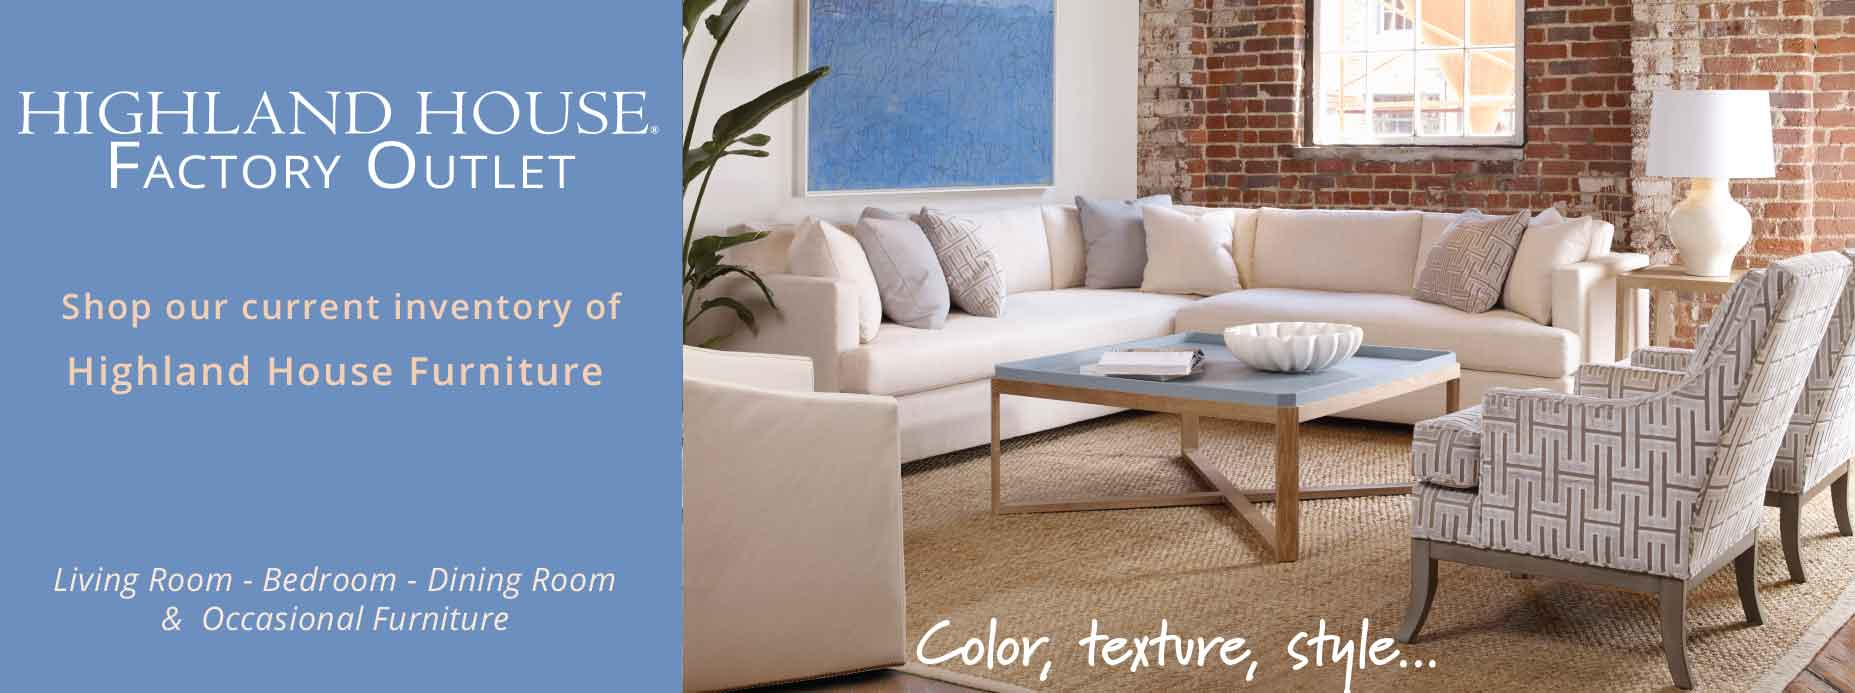 Highland House Furniture Factory Outlet Sale